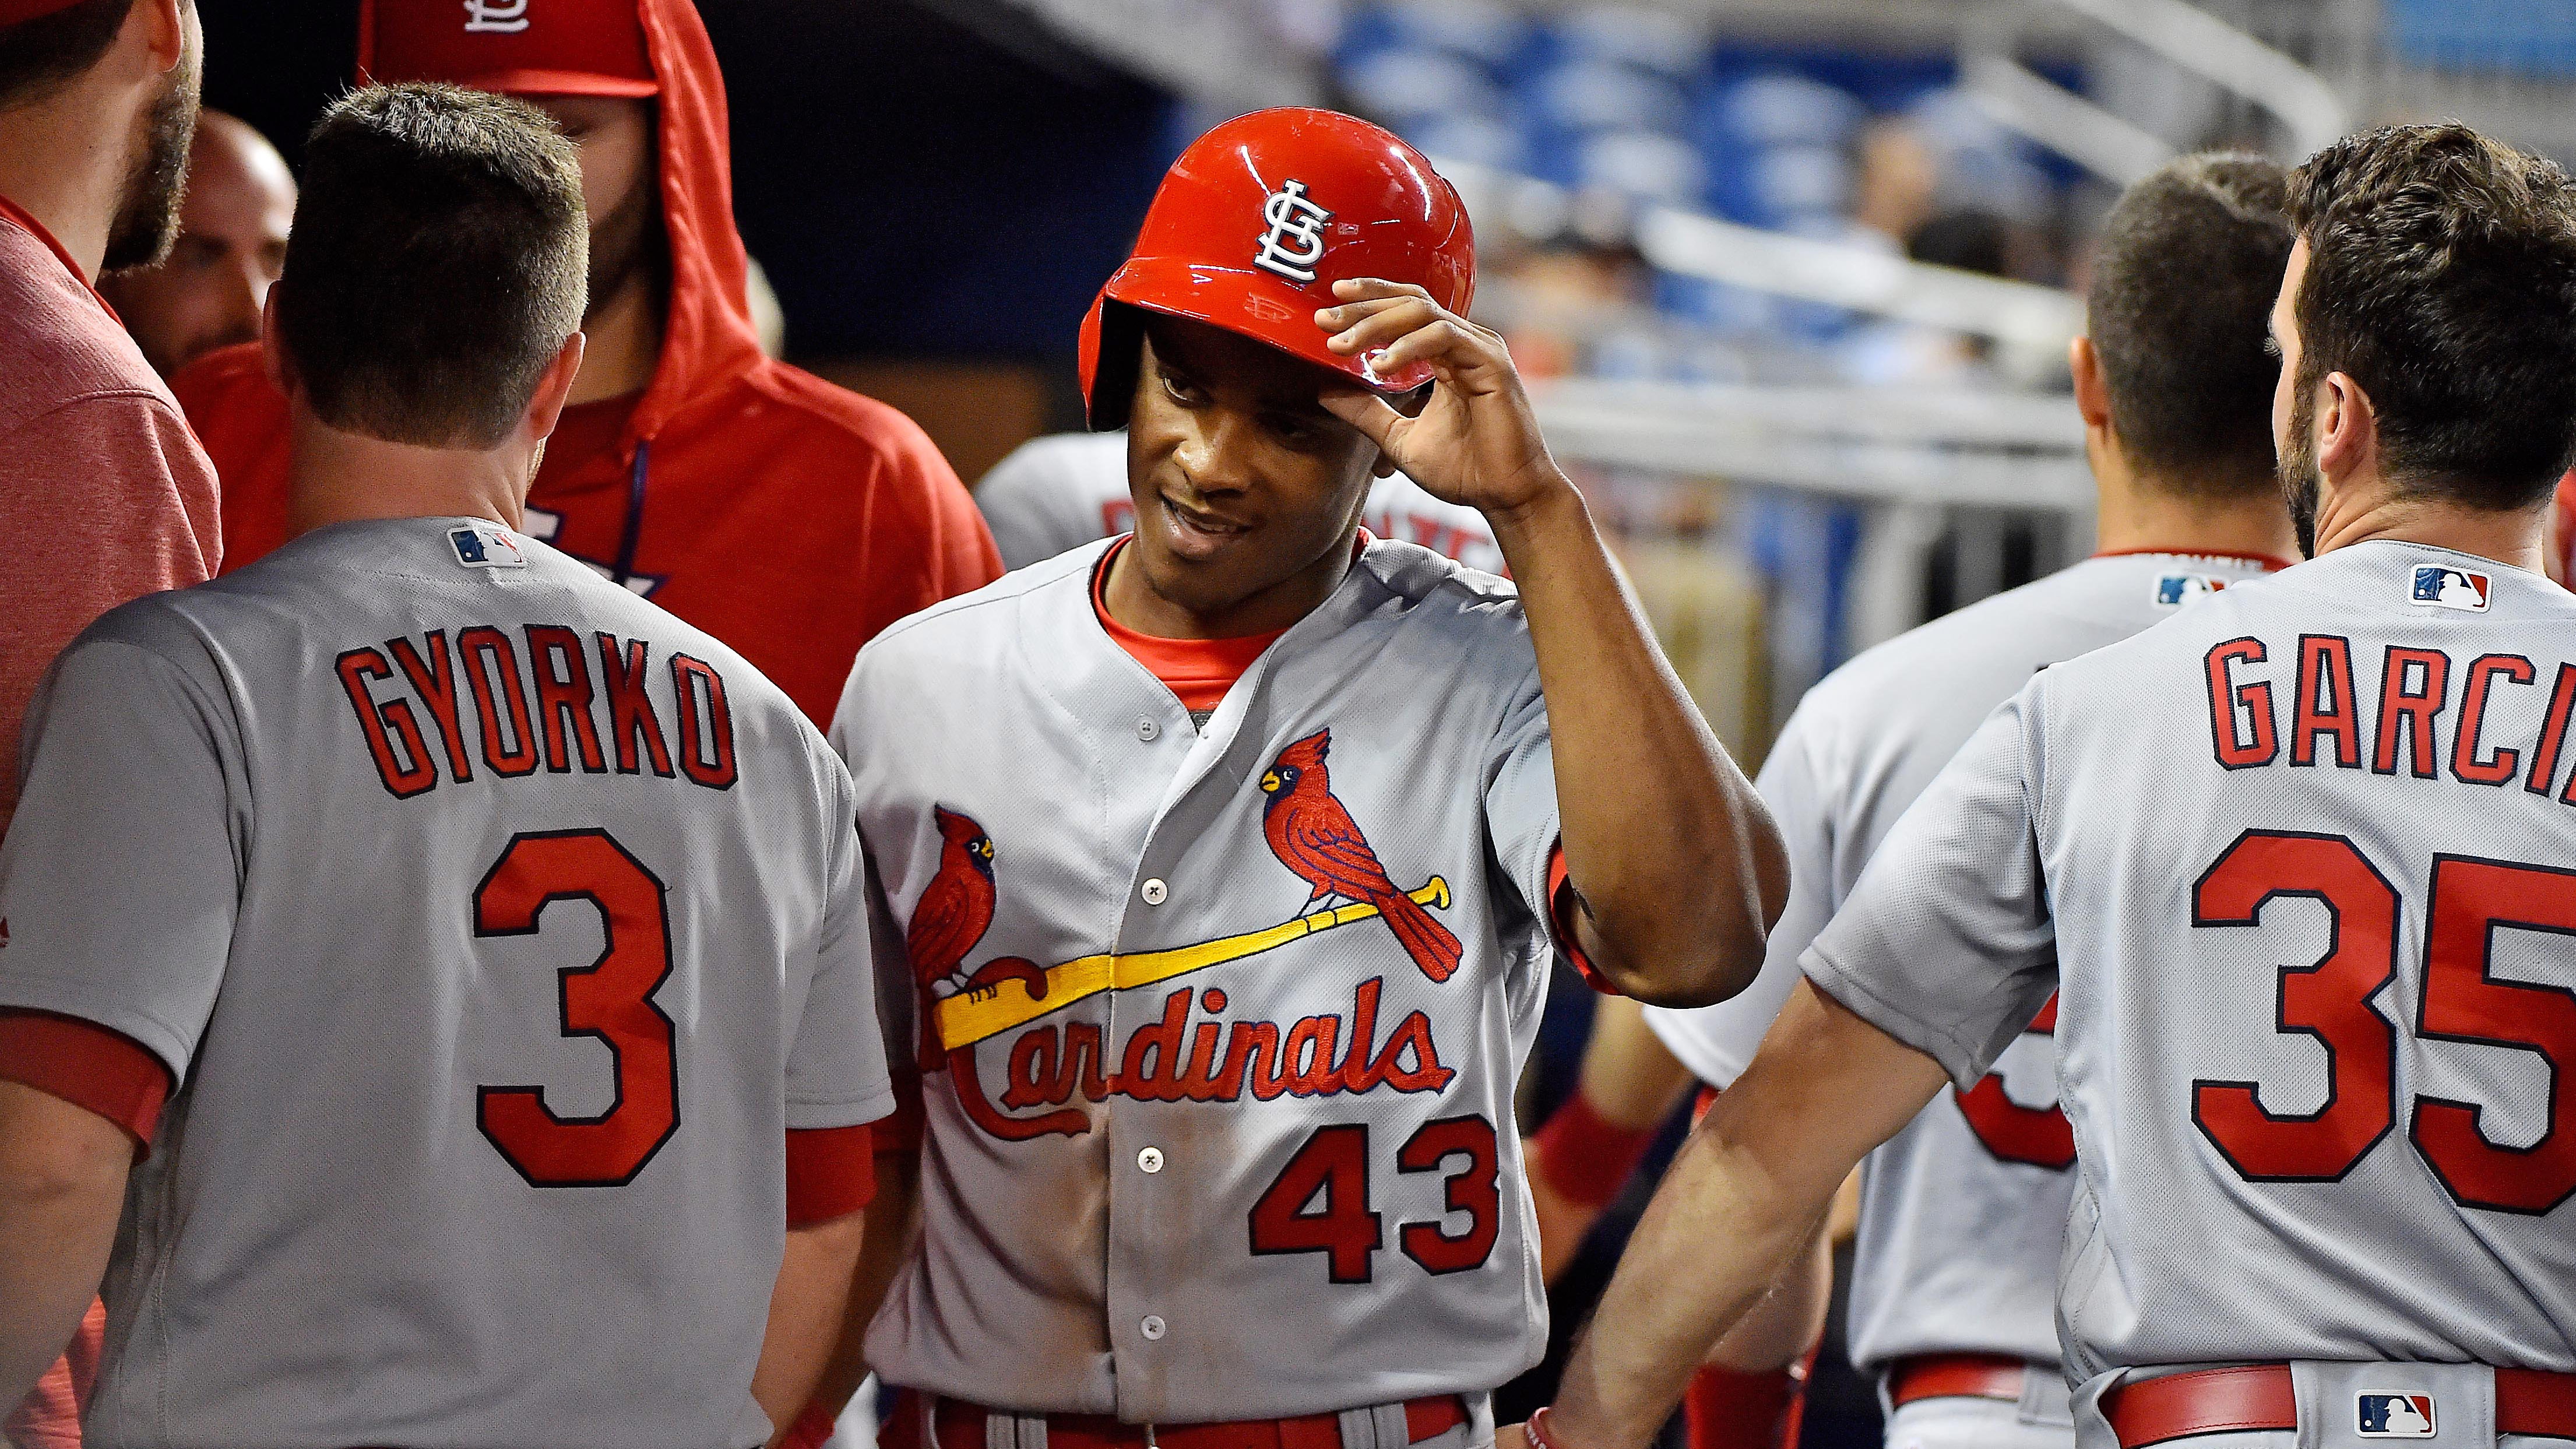 May 8, 2017; Miami, FL, USA; St. Louis Cardinals center fielder Magneuris Sierra (43) celebrates in the dugout after scoring a run against the Miami Marlins at Marlins Park. Mandatory Credit: Jasen Vinlove-USA TODAY Sports